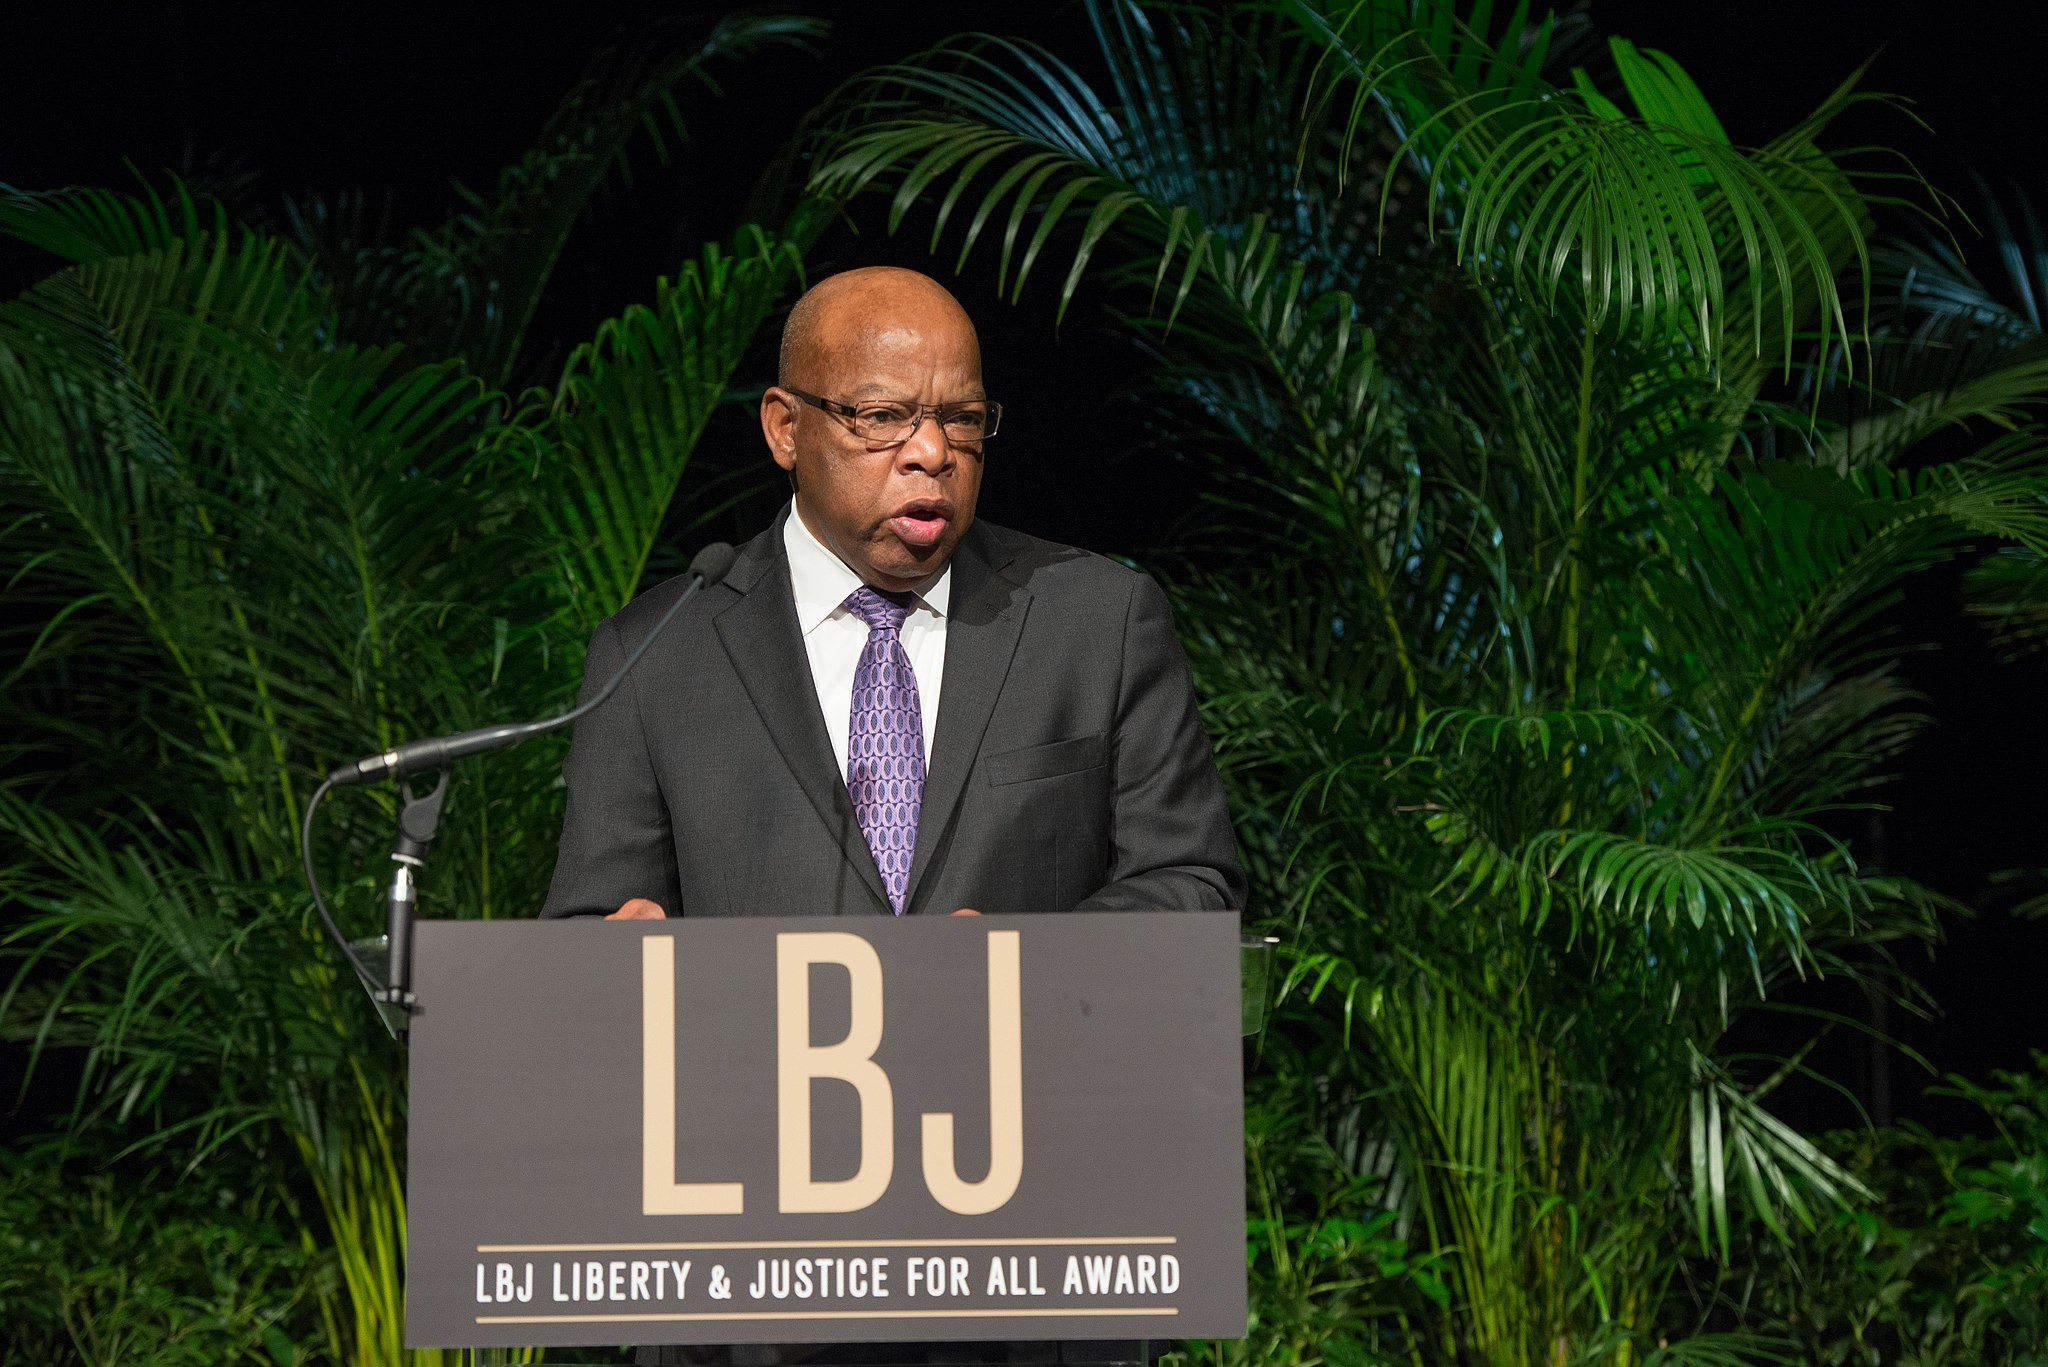 Image: John Lewis at the 2014 Liberty and Justice for All Awards